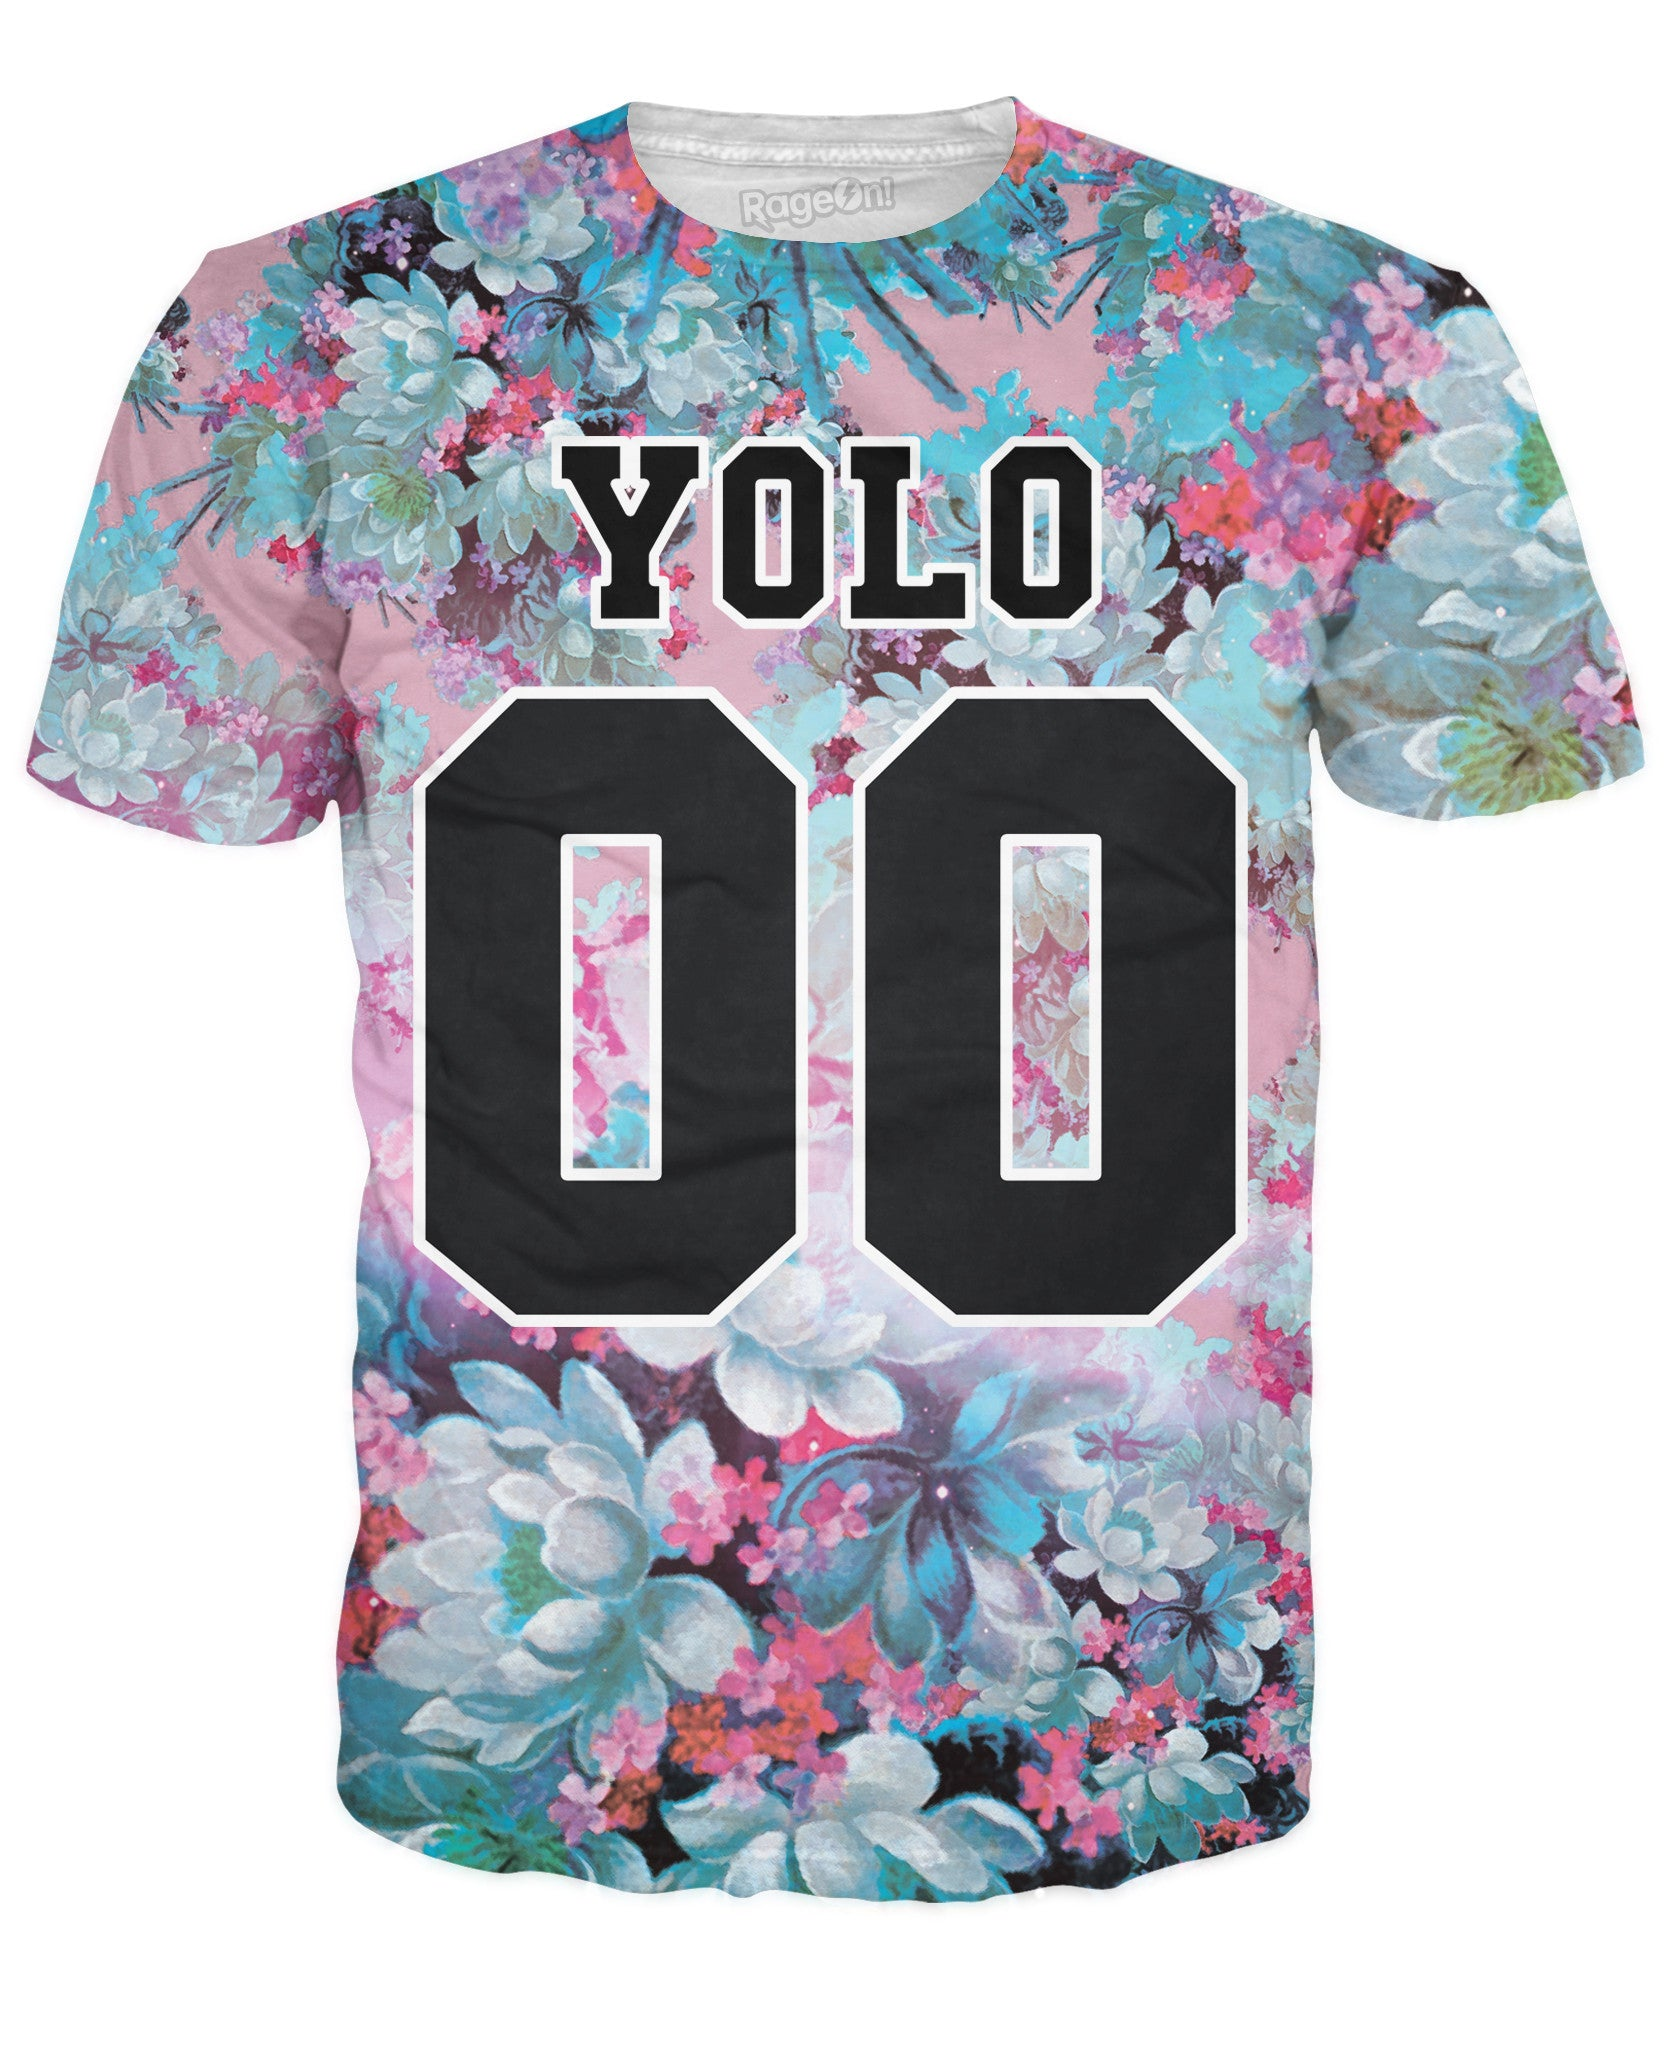 YOLO Floral T-Shirt